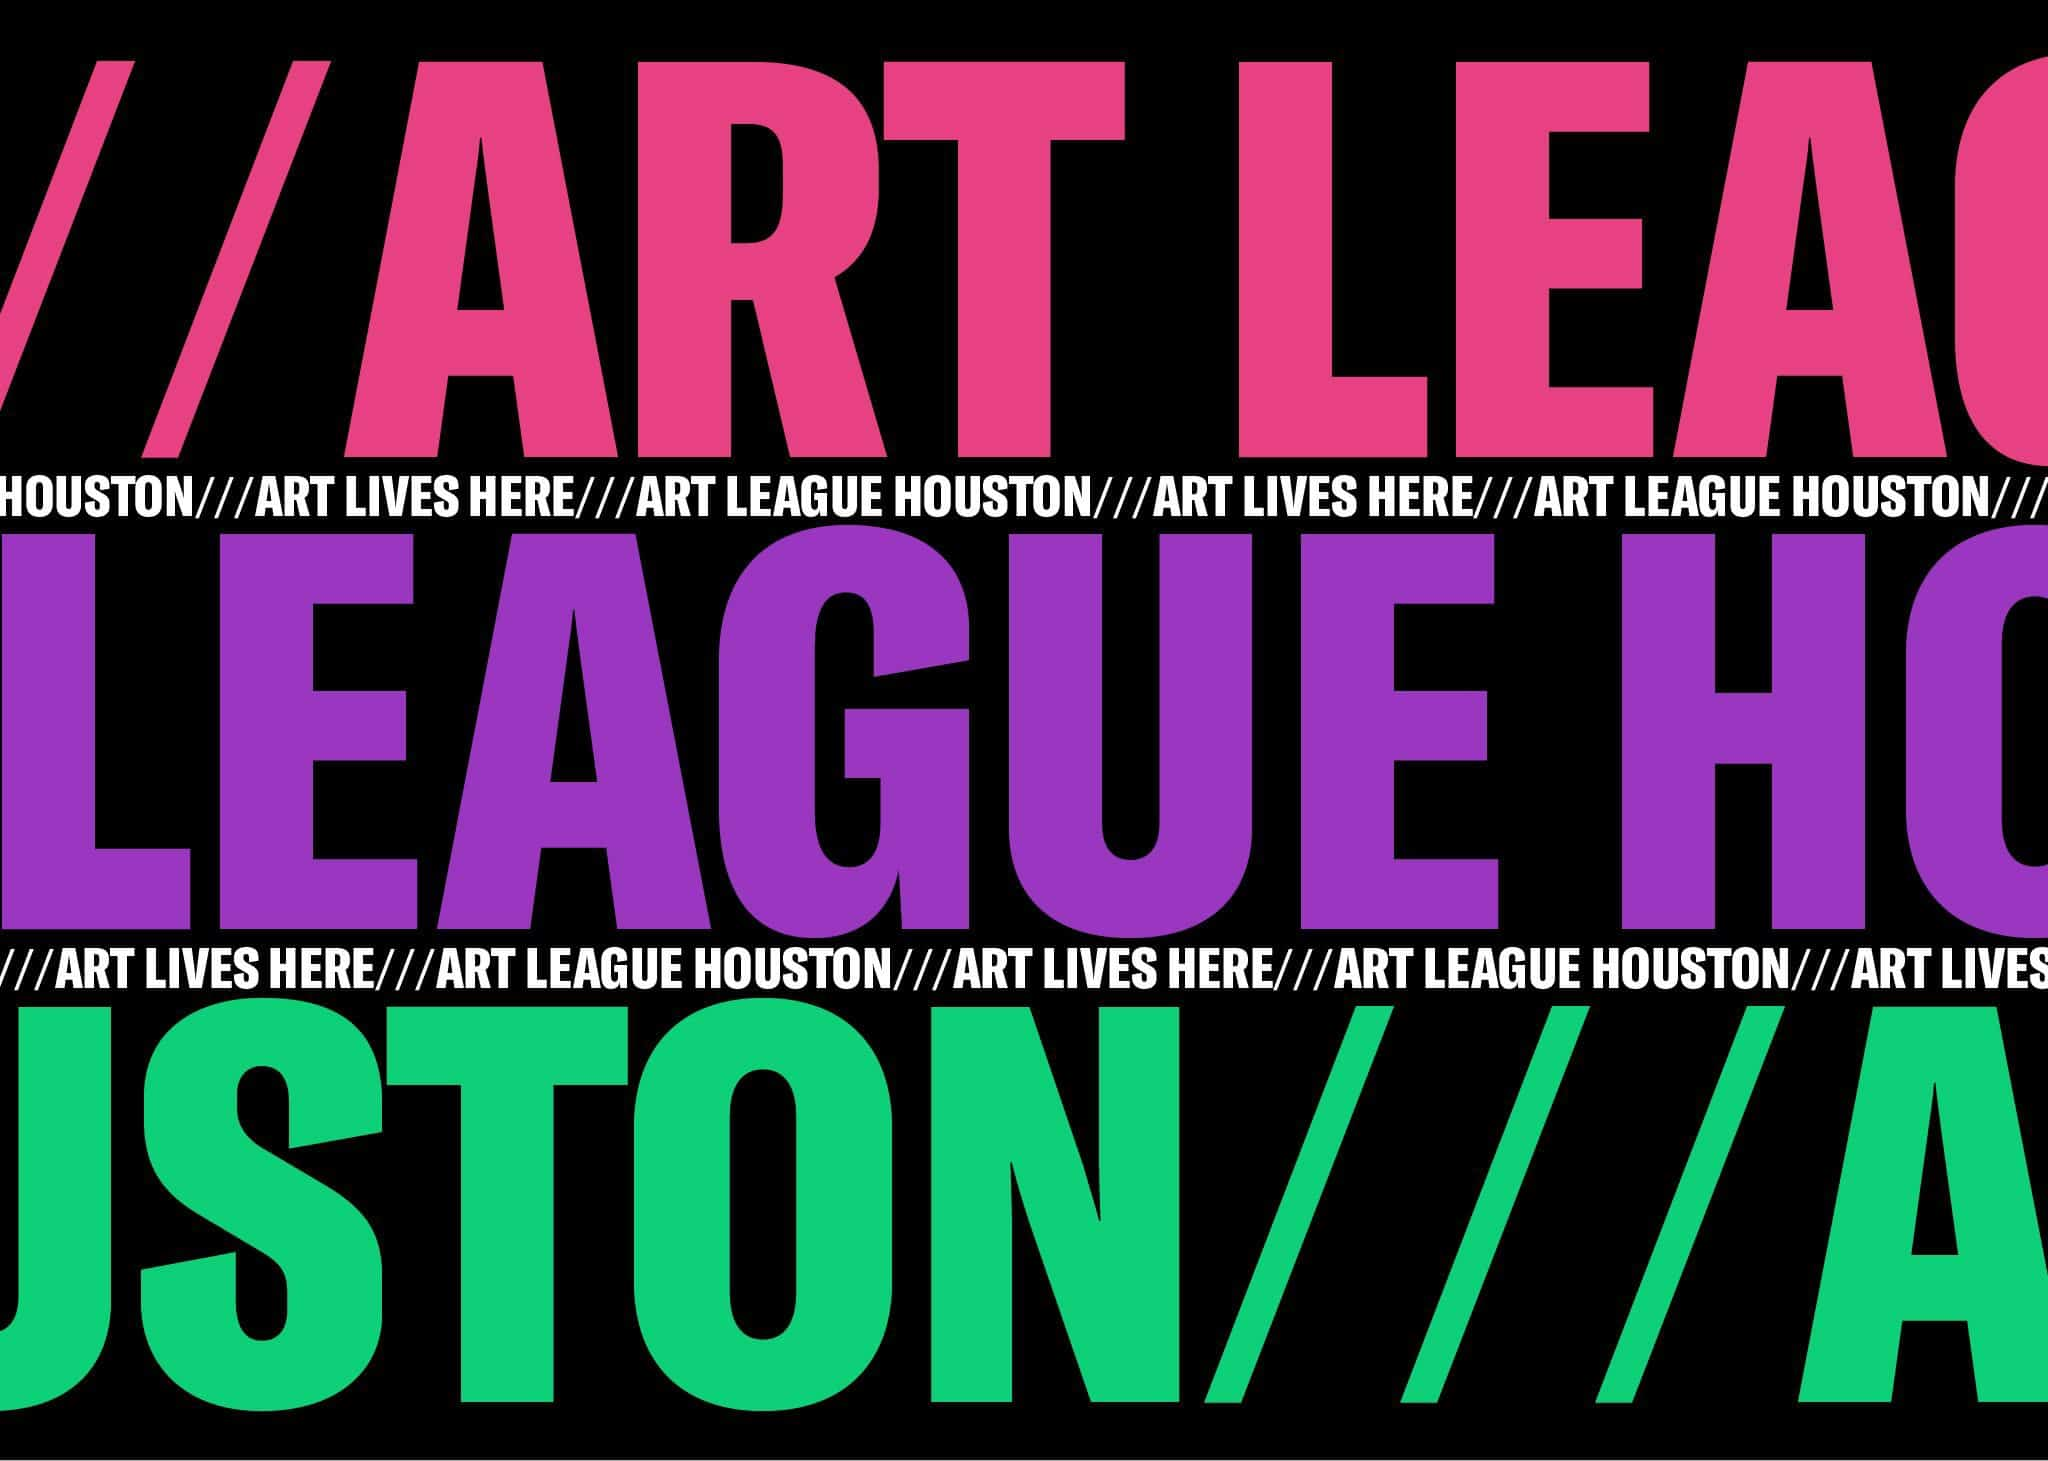 Brand development, website, strategy, graphic design, and signage for Art League Houston, Texas | Field of Study: A Design & Branding Consultancy.